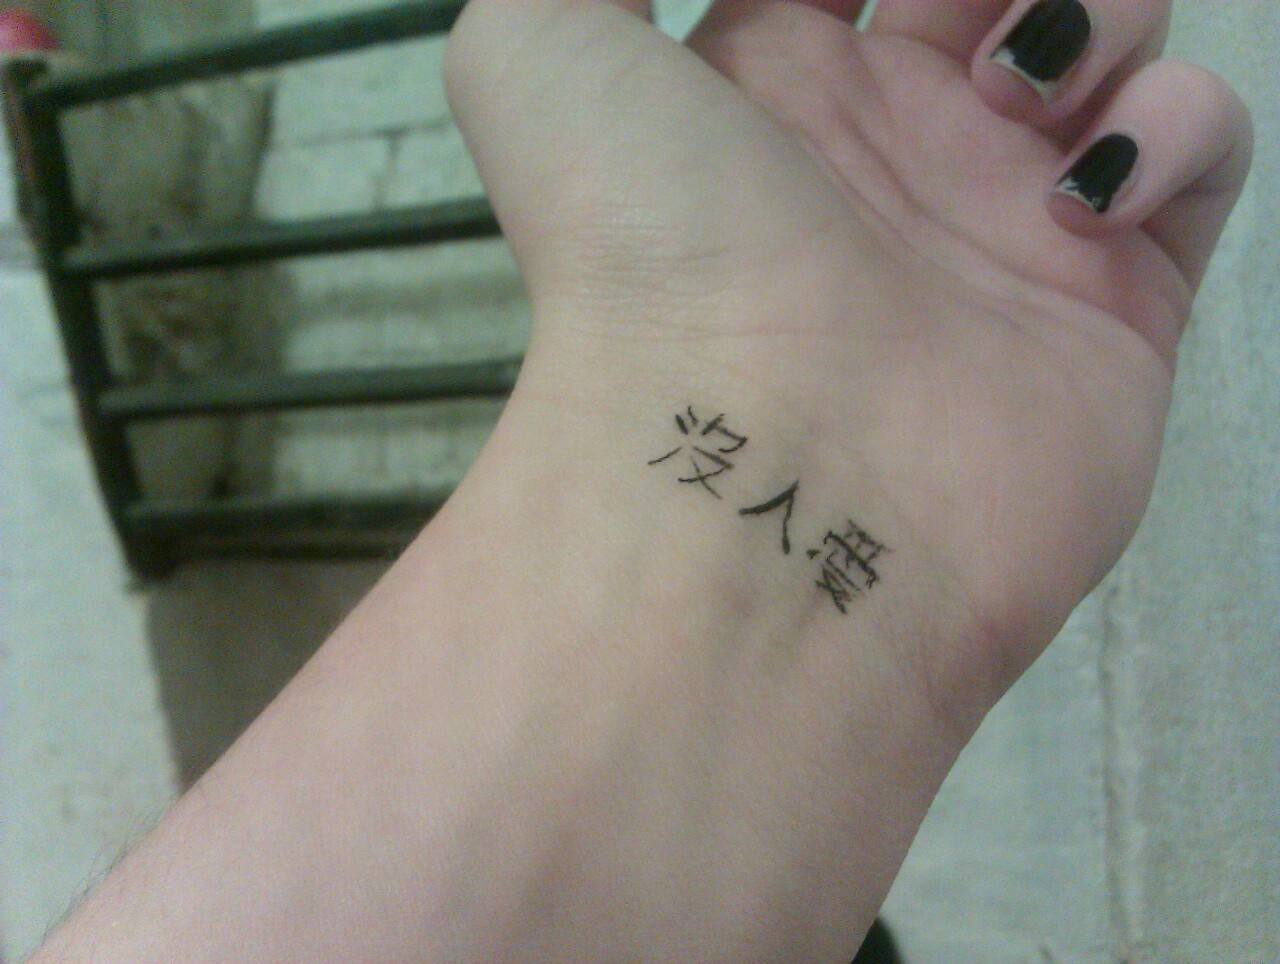 reclusivesouls:  reclusivesouls:  I wrote 'unloved' on my wrist in chinese characters today because that is genuinely how I am feeling  oh wow this is an old photo